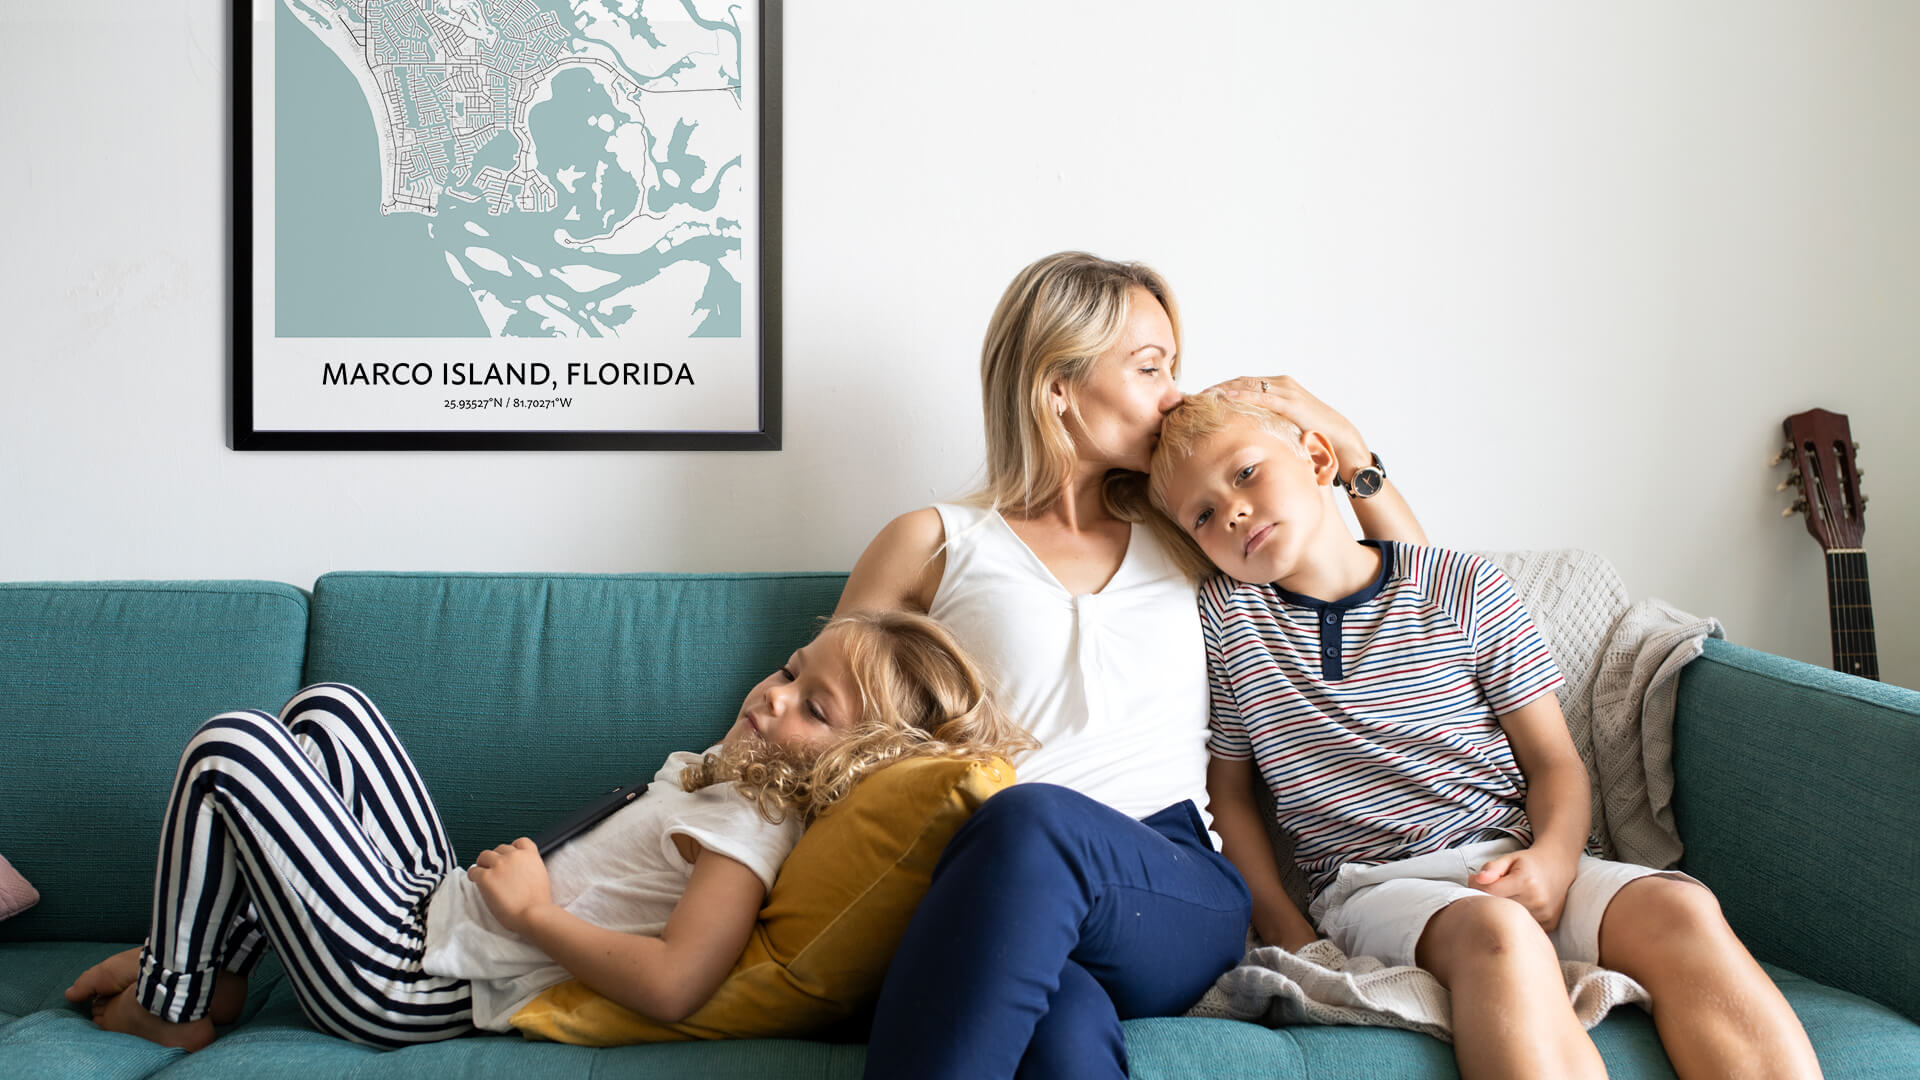 Marco Island map poster